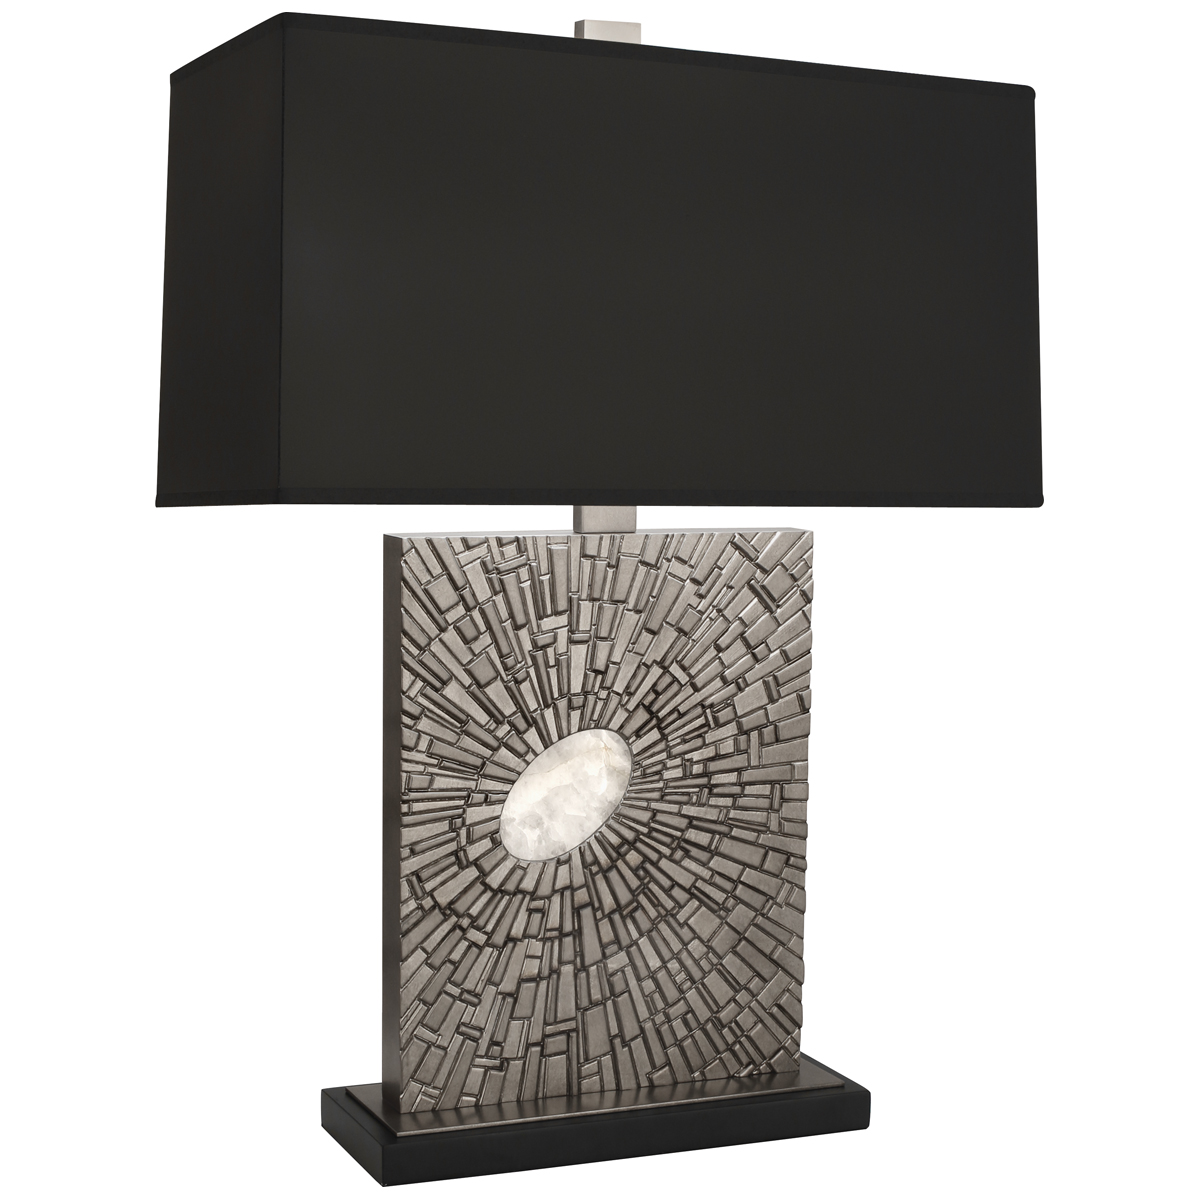 Goliath Table Lamp Style #S415B